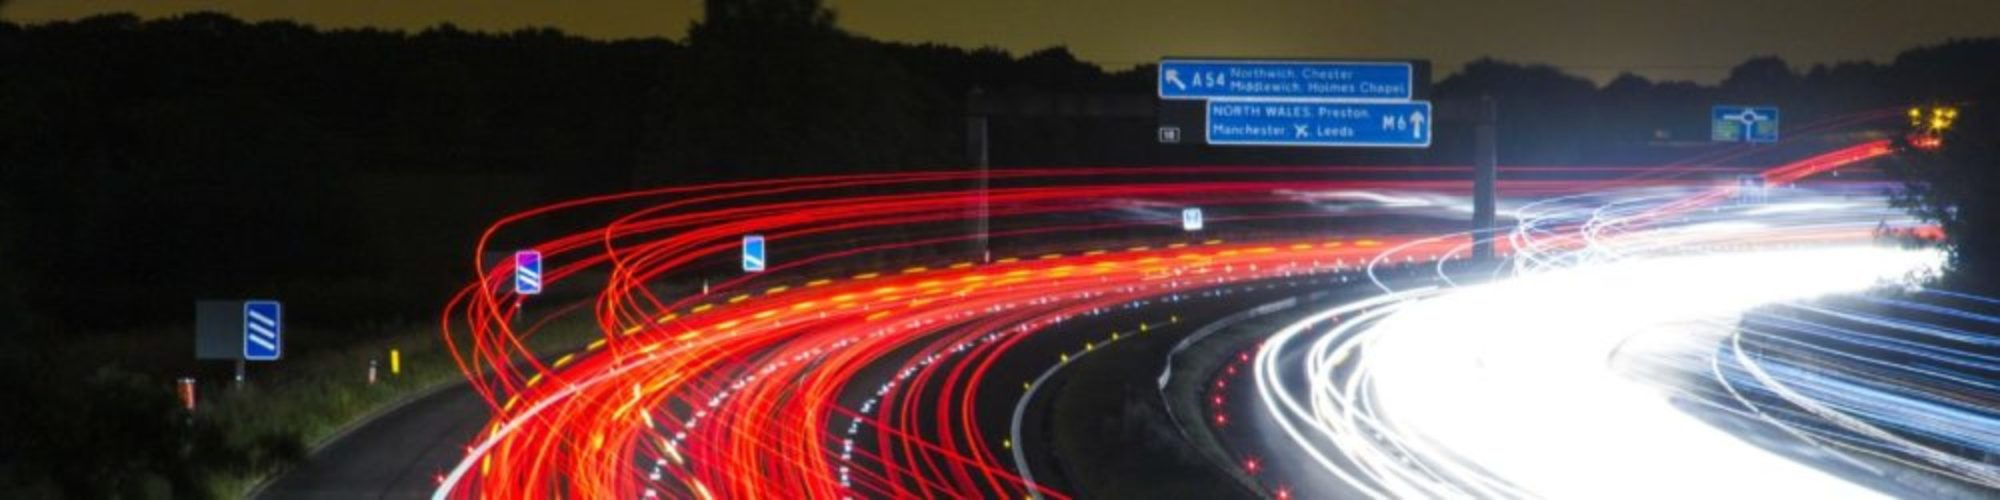 IEEE Intelligent Transportation Systems Society's Technical Activities